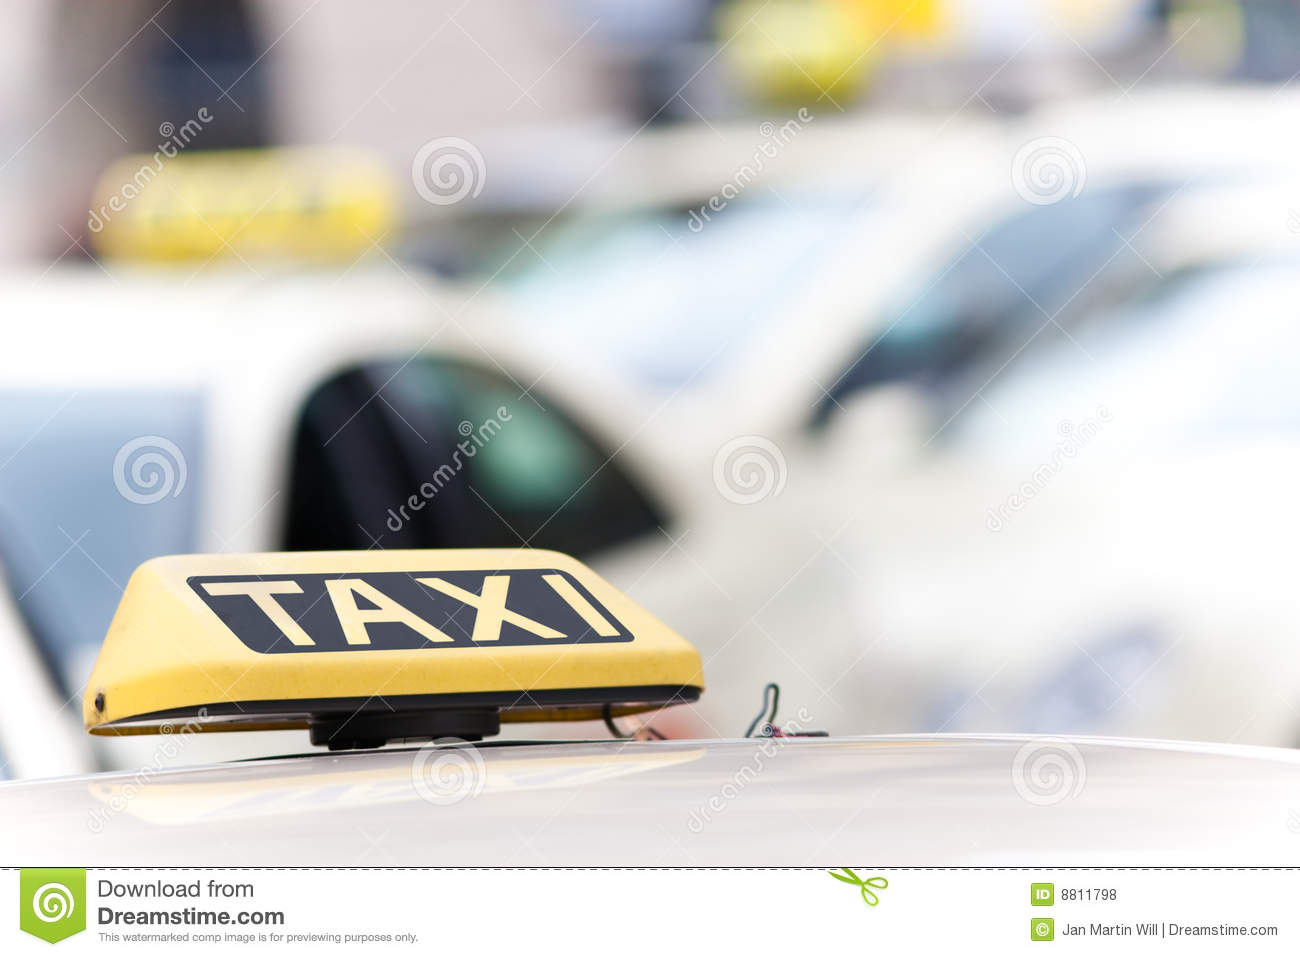 Taxi cab signs on vehicles stock photo  Image of yellow